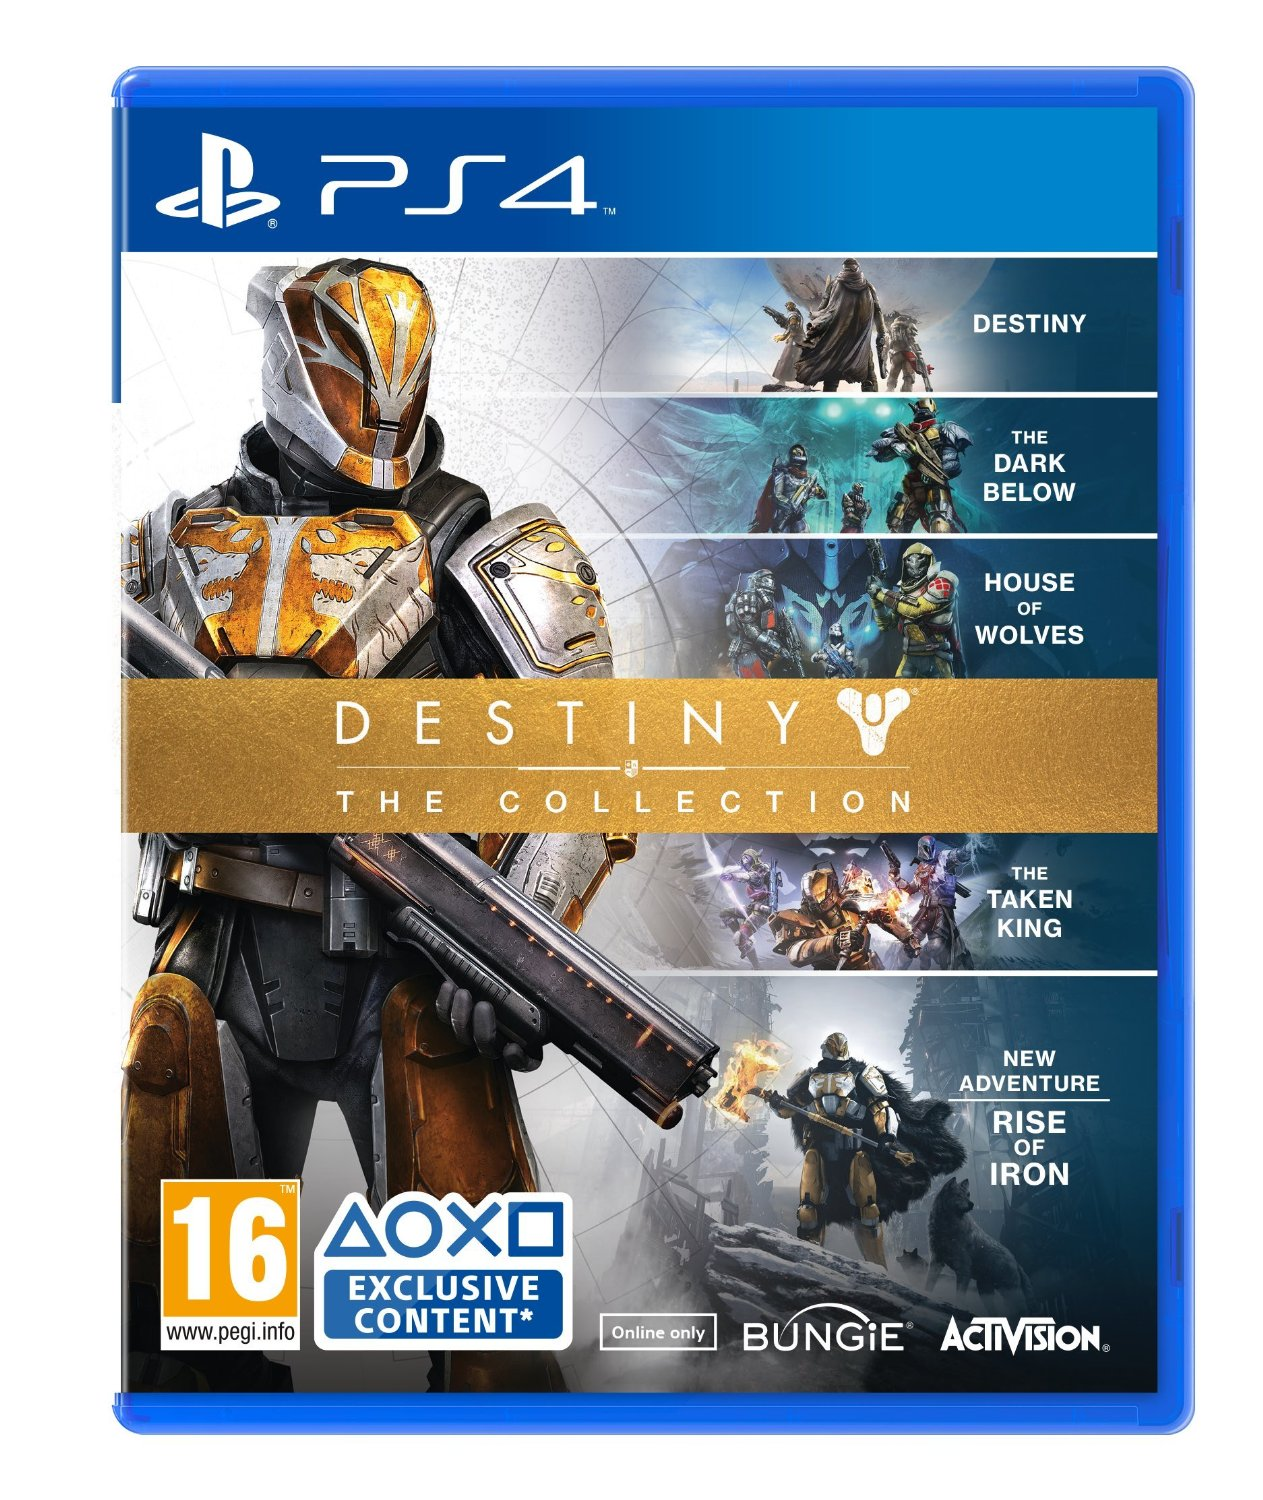 Destiny - The Collection-PlayStation 4                                                                                                                 By:Bungie                                             Eur:52.0 Ден:3999